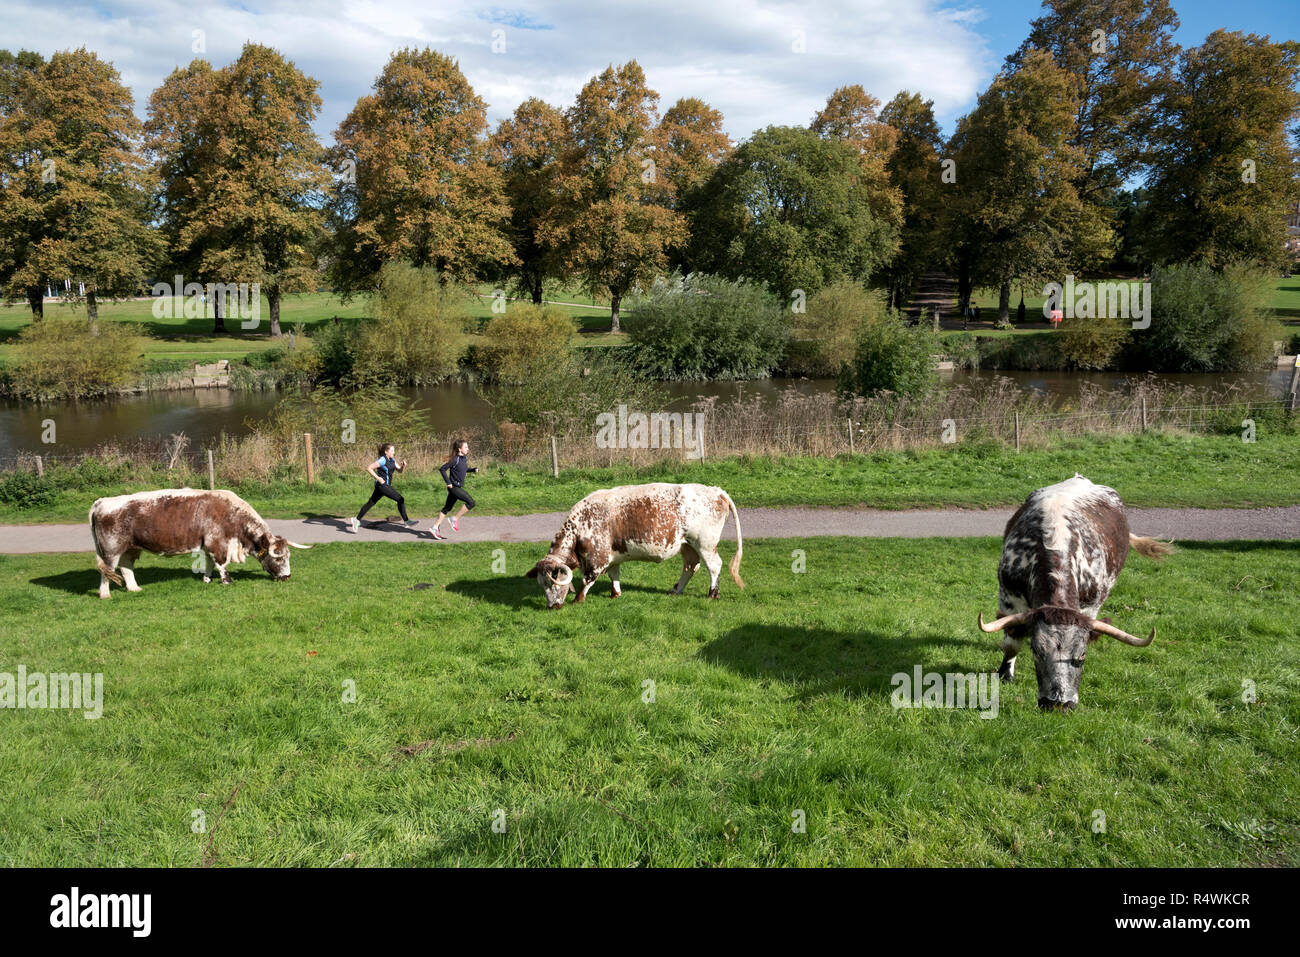 Joggers pass Longhorn cattle grazing by the Rever Severn in the centre of Shrewsbury Shropshire, UK - Stock Image